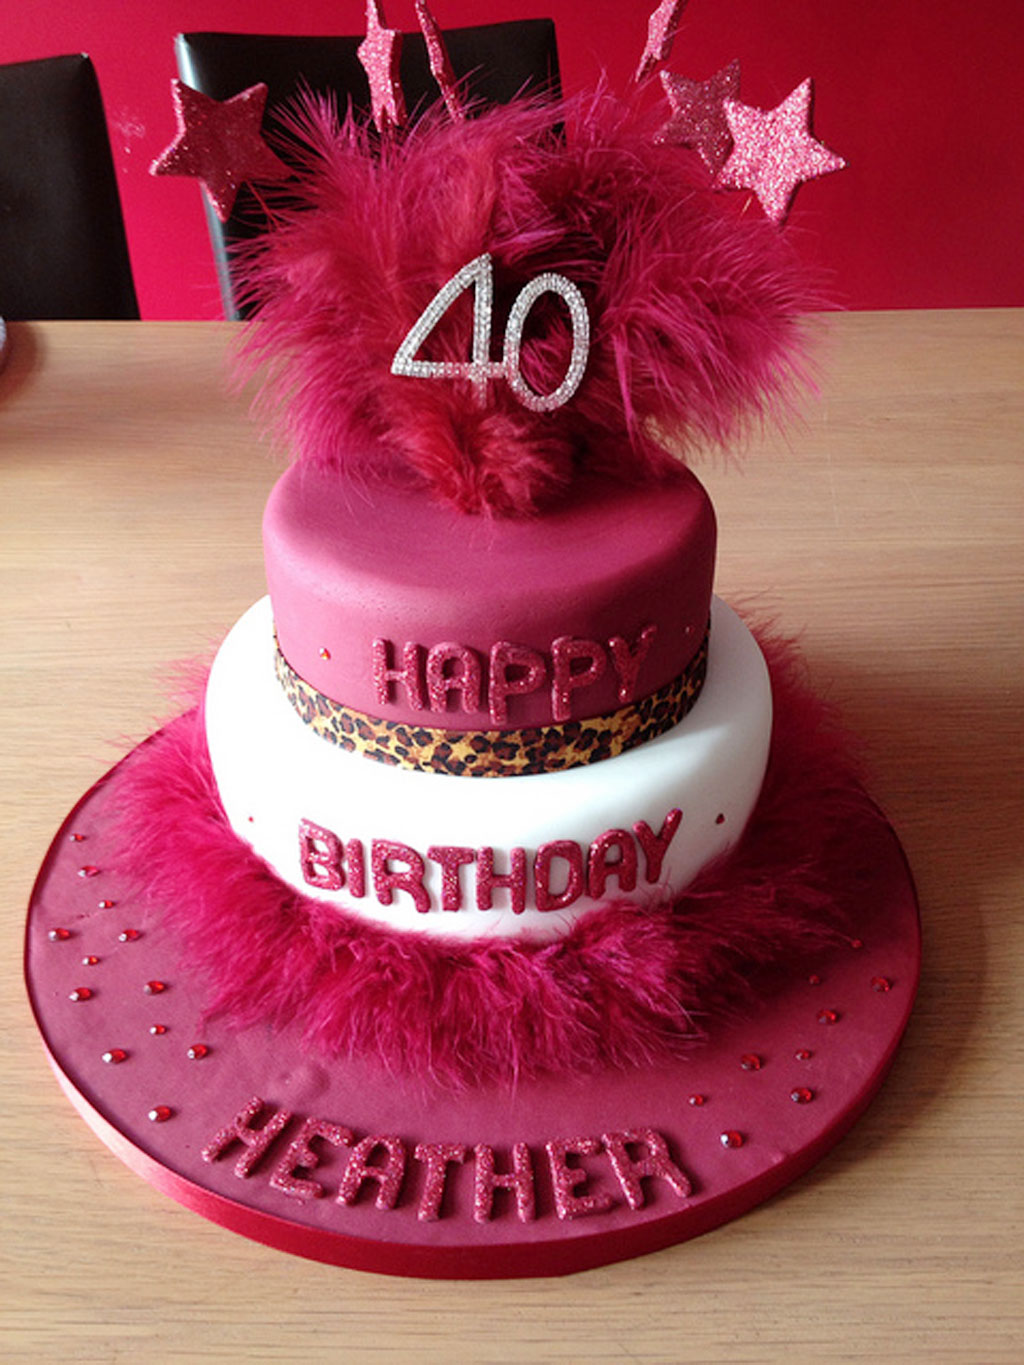 Cake Decorating For 40th Birthday : 40th Birthday Decorations Birthday Cake - Cake Ideas by ...